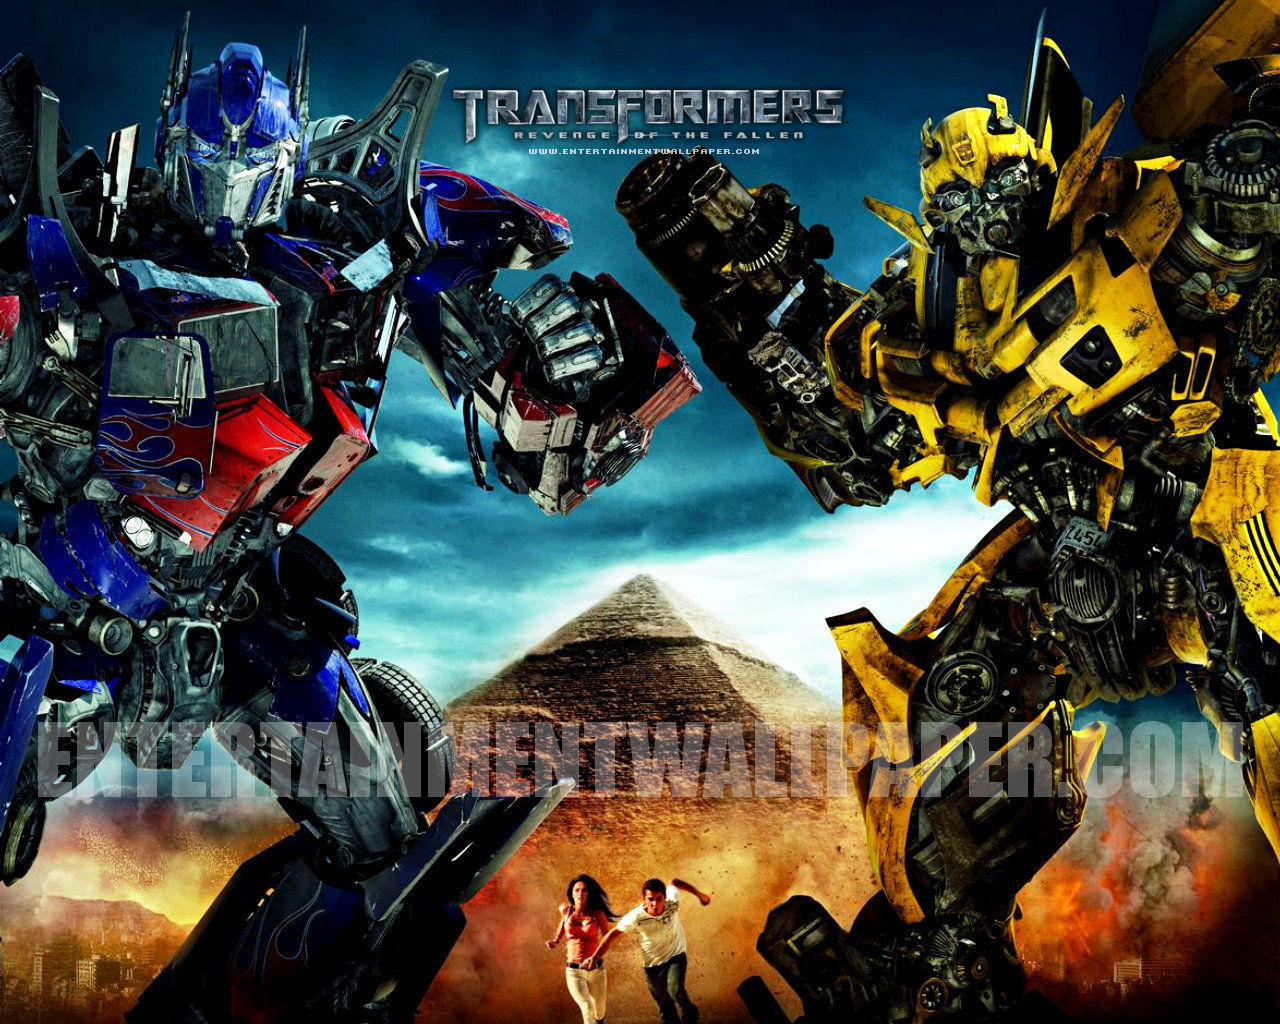 Imagenes De Transformers: Transformers: Revenge Of The Fallen